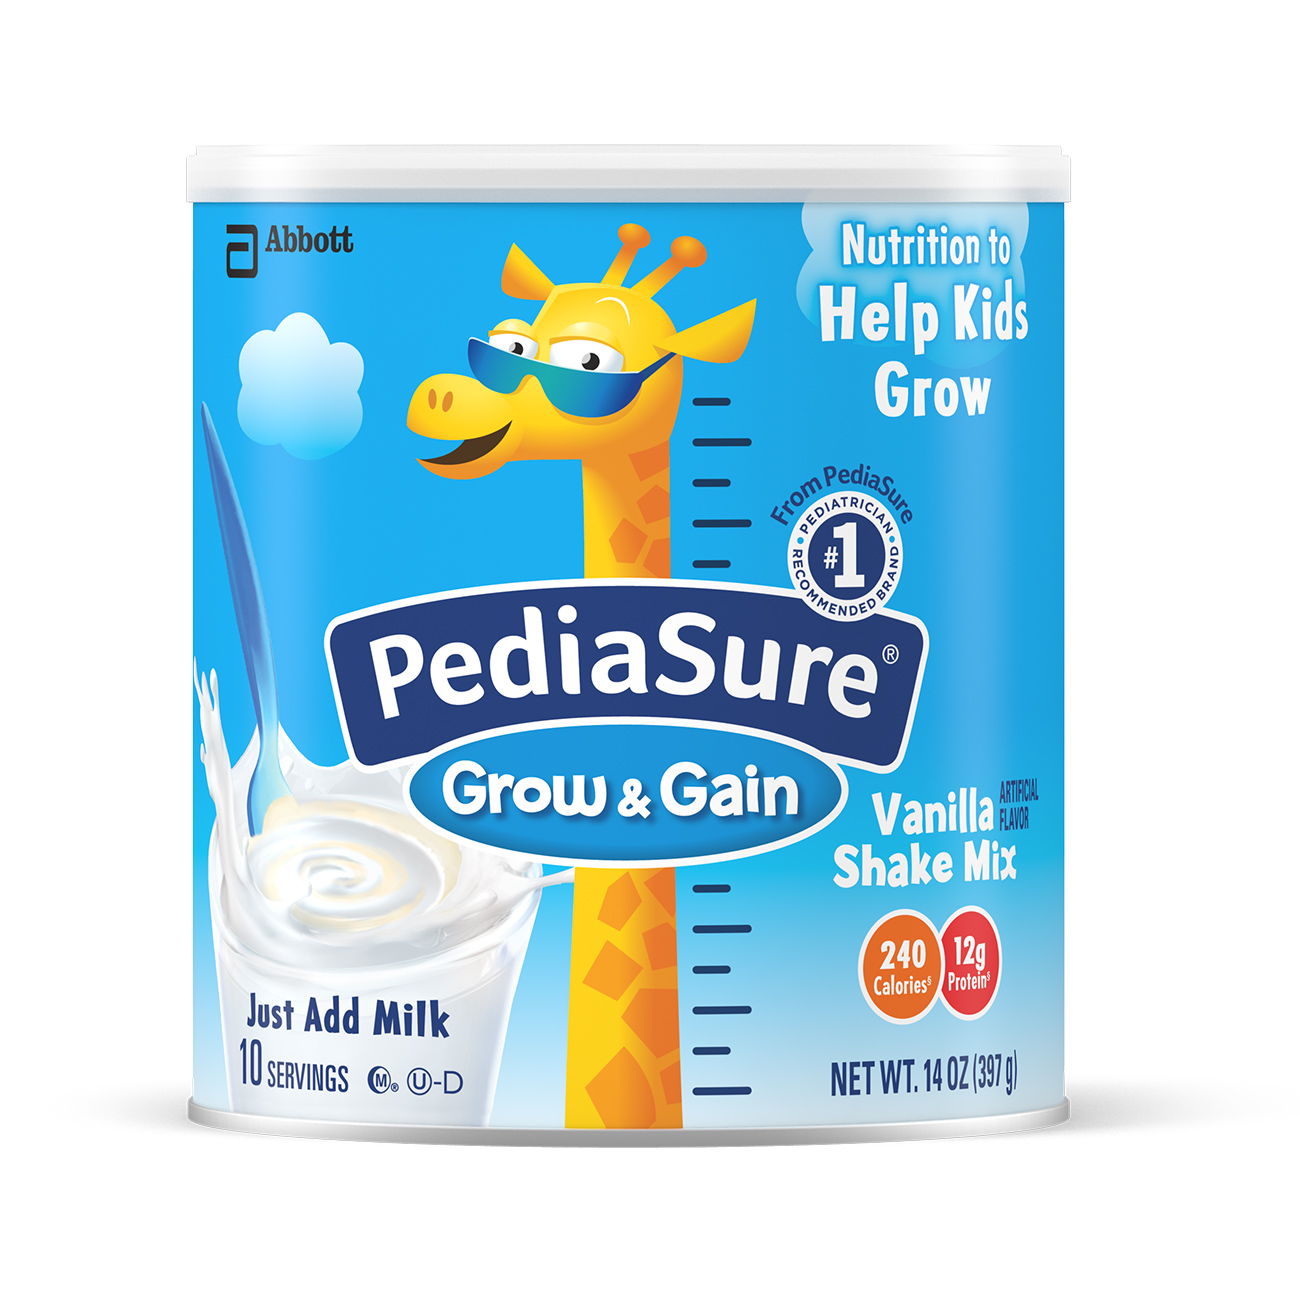 PediaSure Grow & Gain Vanilla Shake Mix, Nutrition Shake For Kids, 14 oz